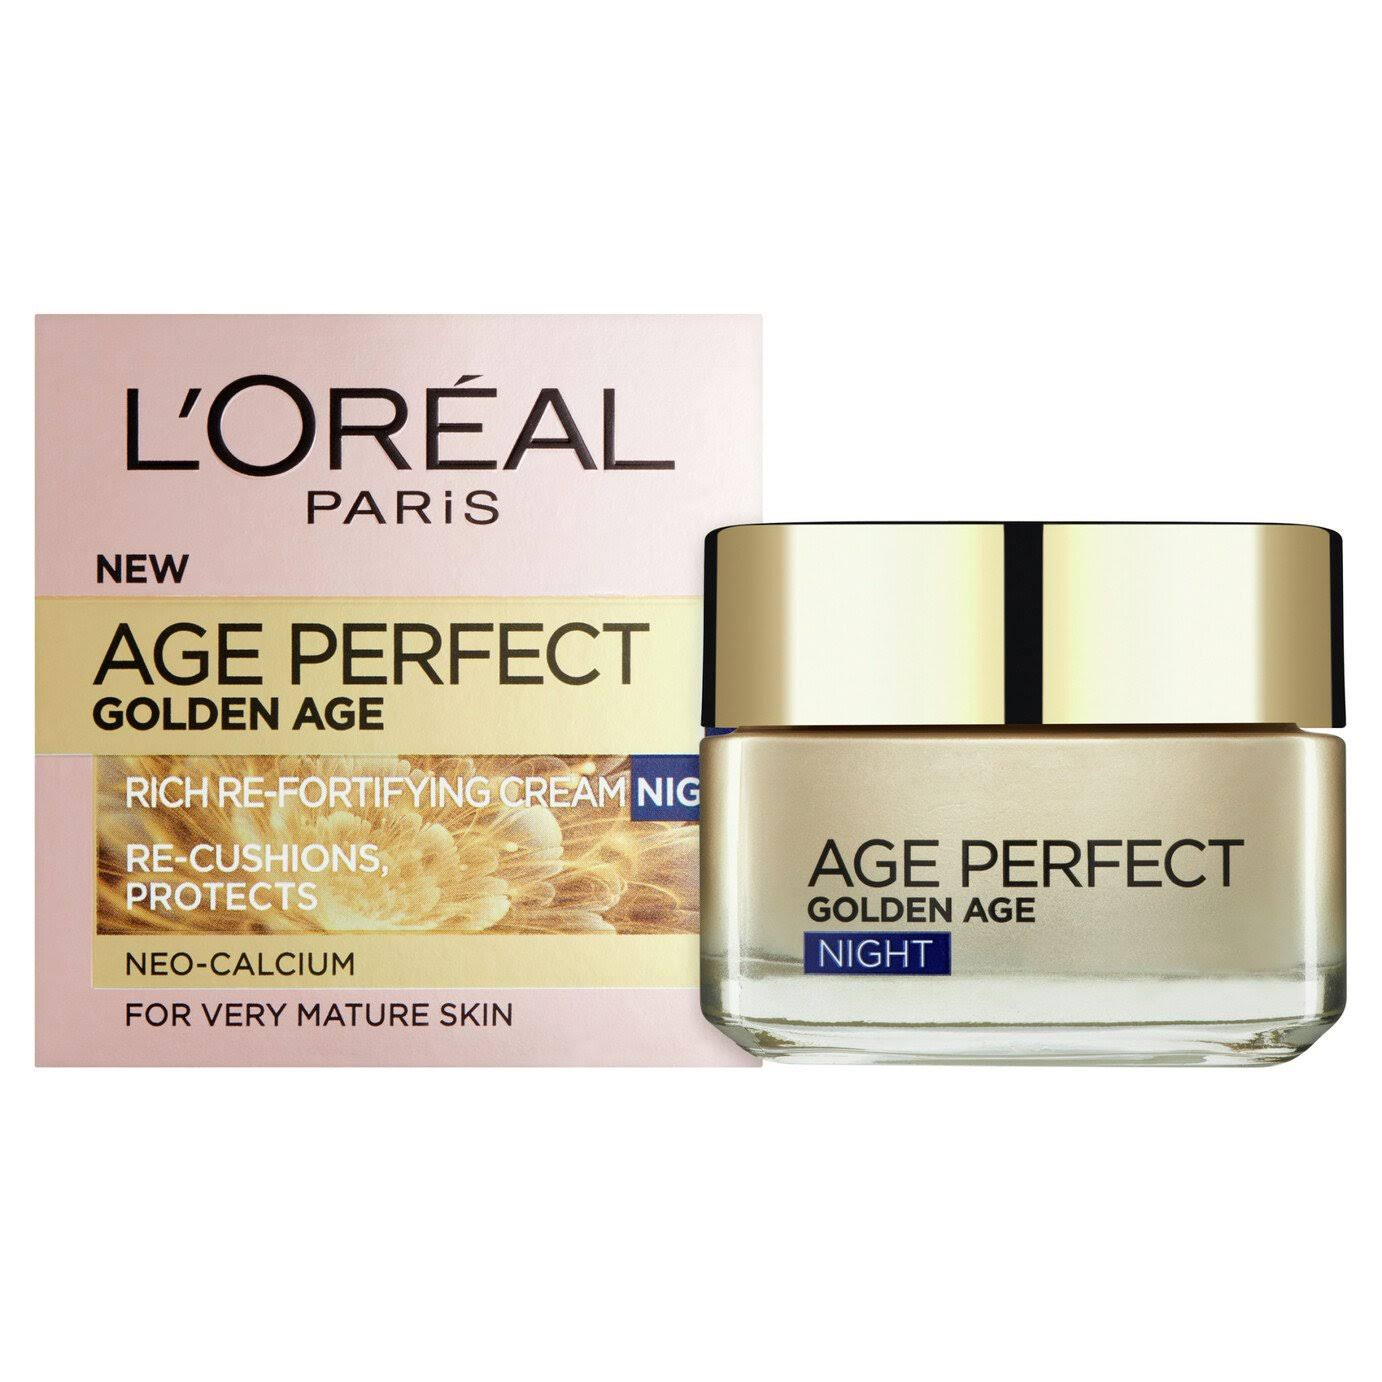 L'oreal Paris Age Perfect Golden Age Cooling Night Cream - 50ml